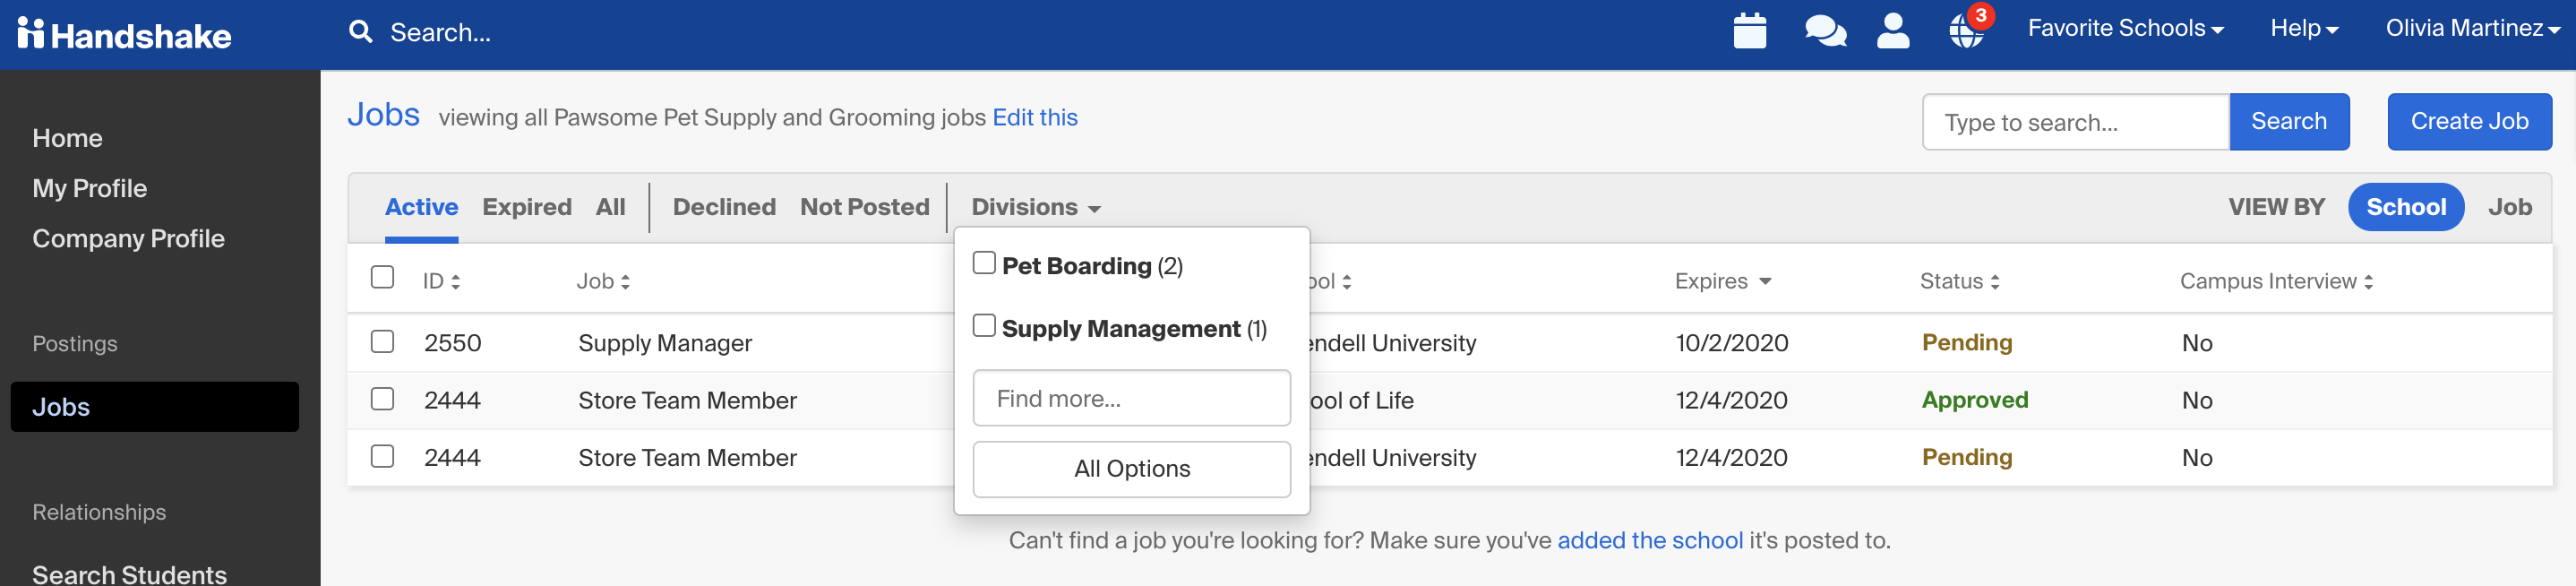 jobs_page_division_filter.png